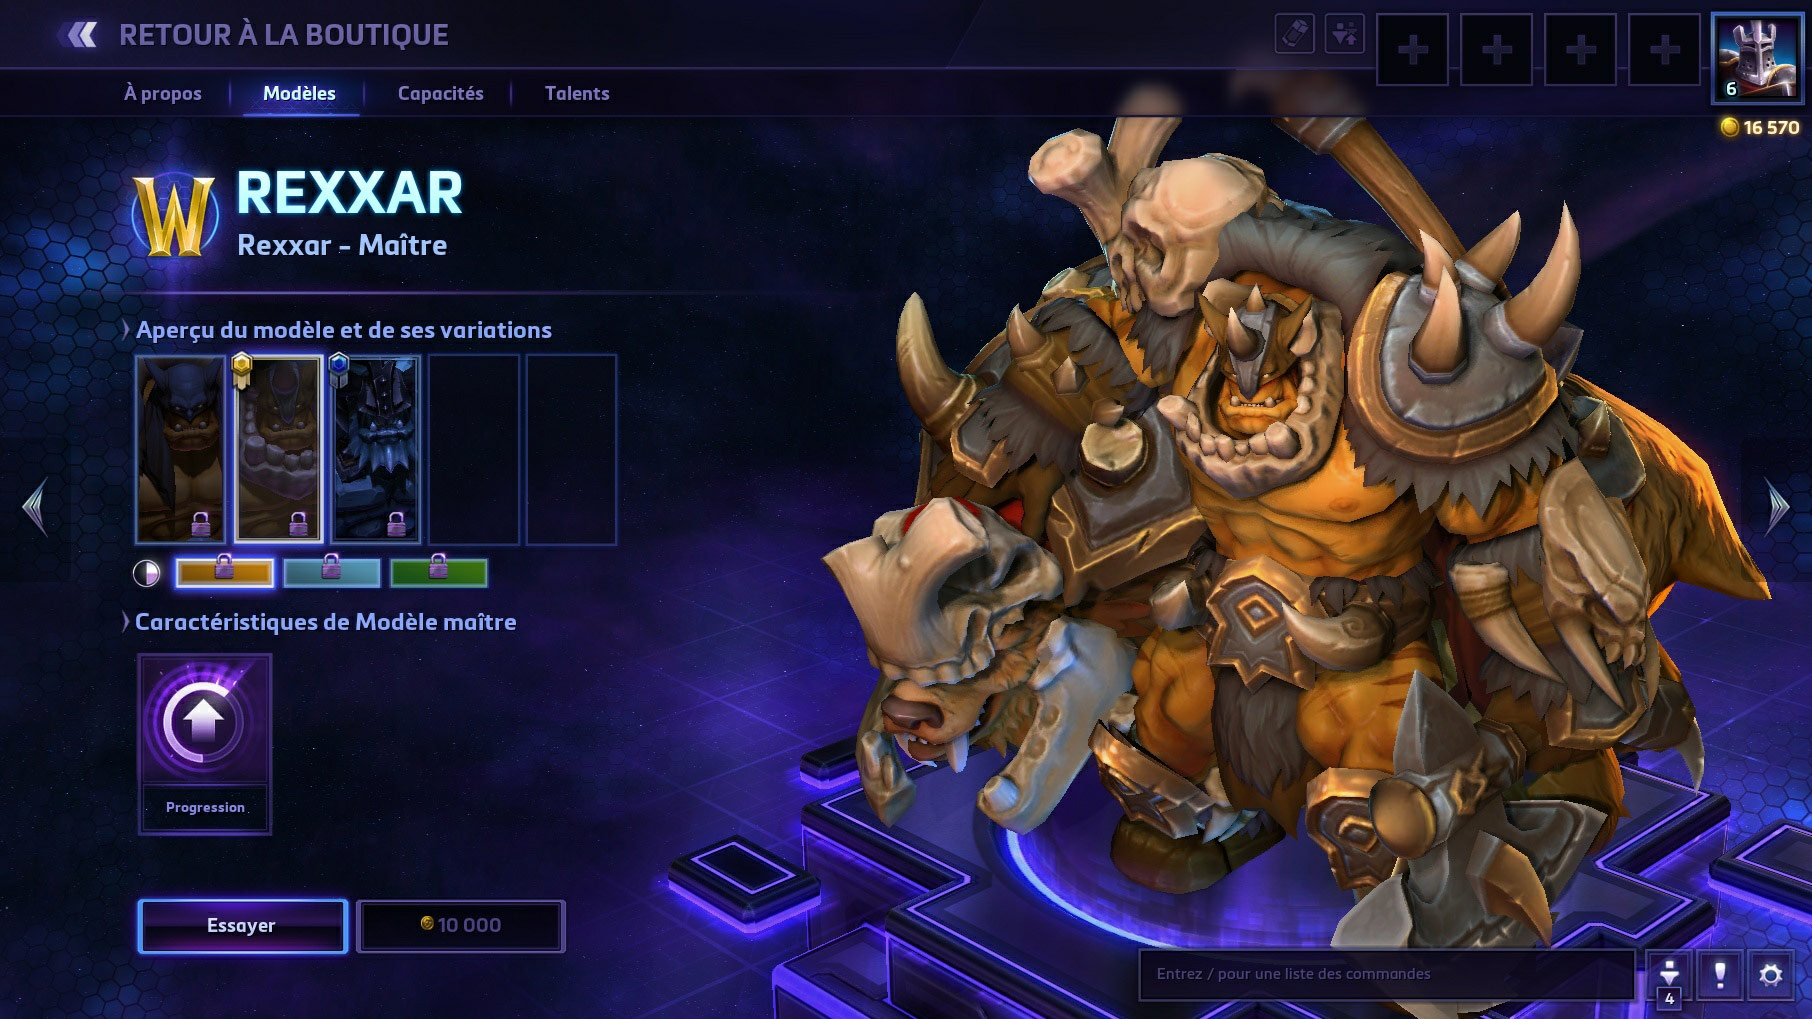 Apparence de Rexxar dans Heroes of the Storm.